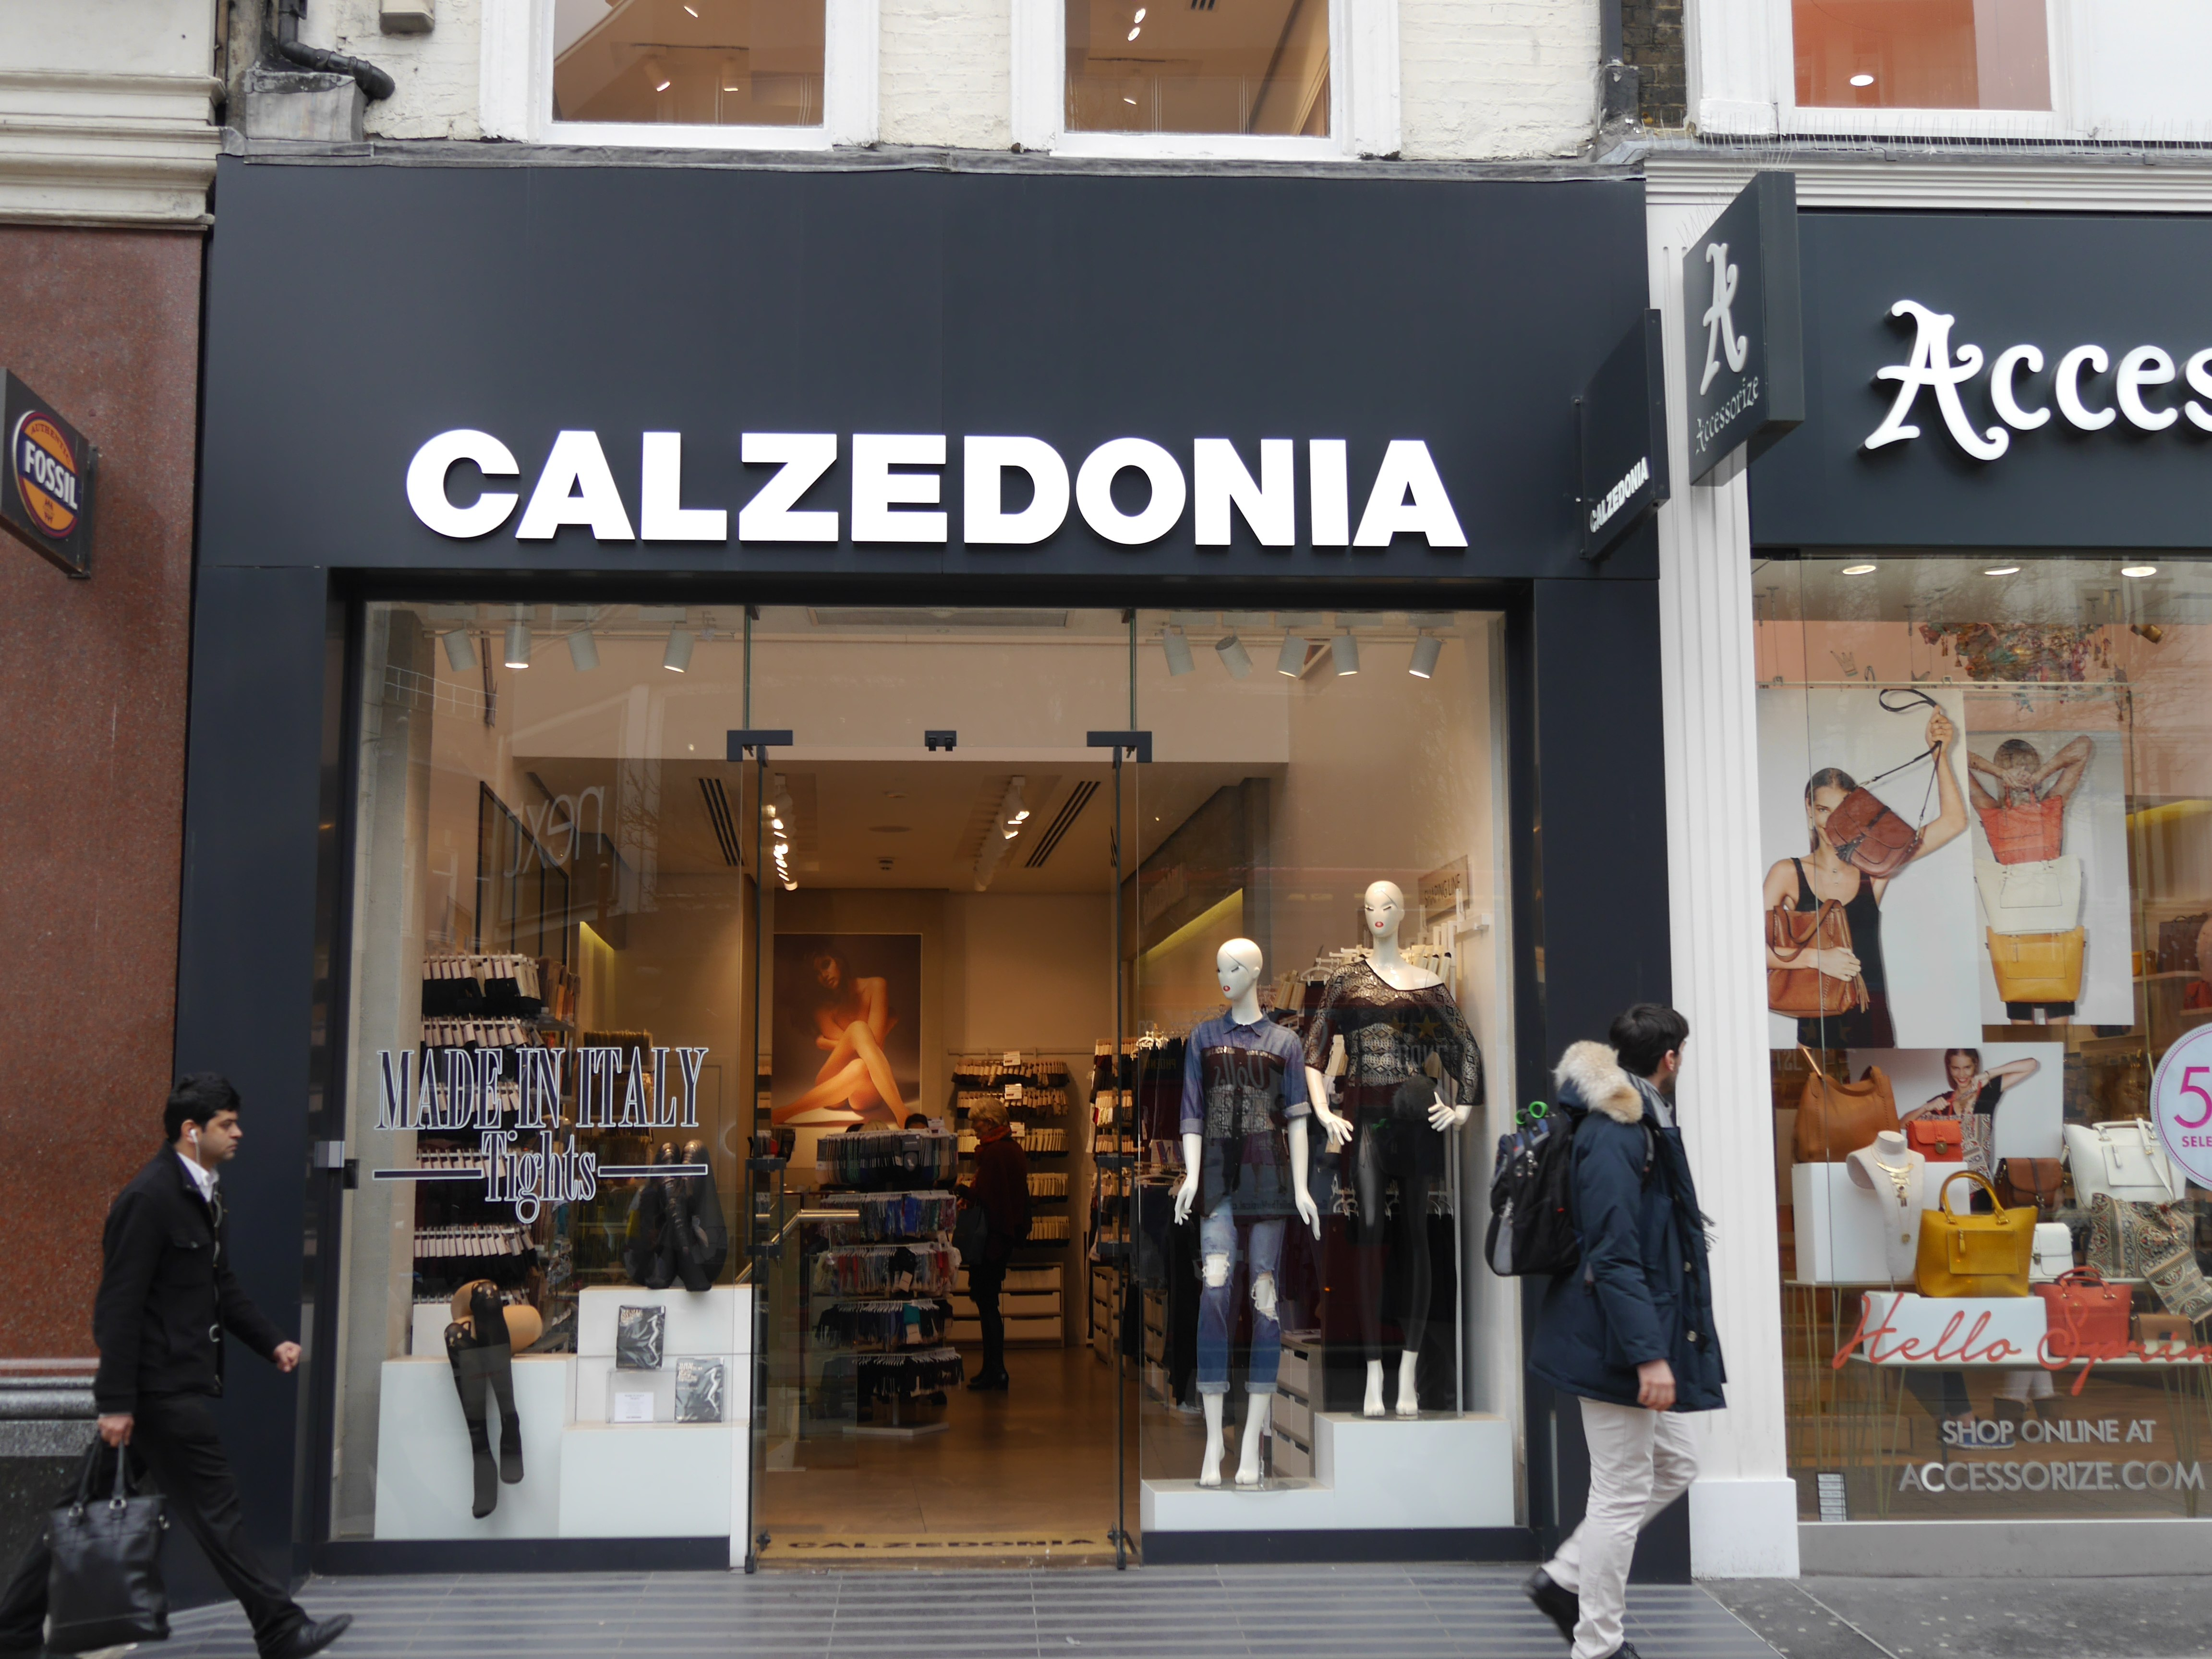 Calzedonia - The complete information and online sale with free shipping.  Order and buy now for the lowest price in the best online store! 0452af2feb